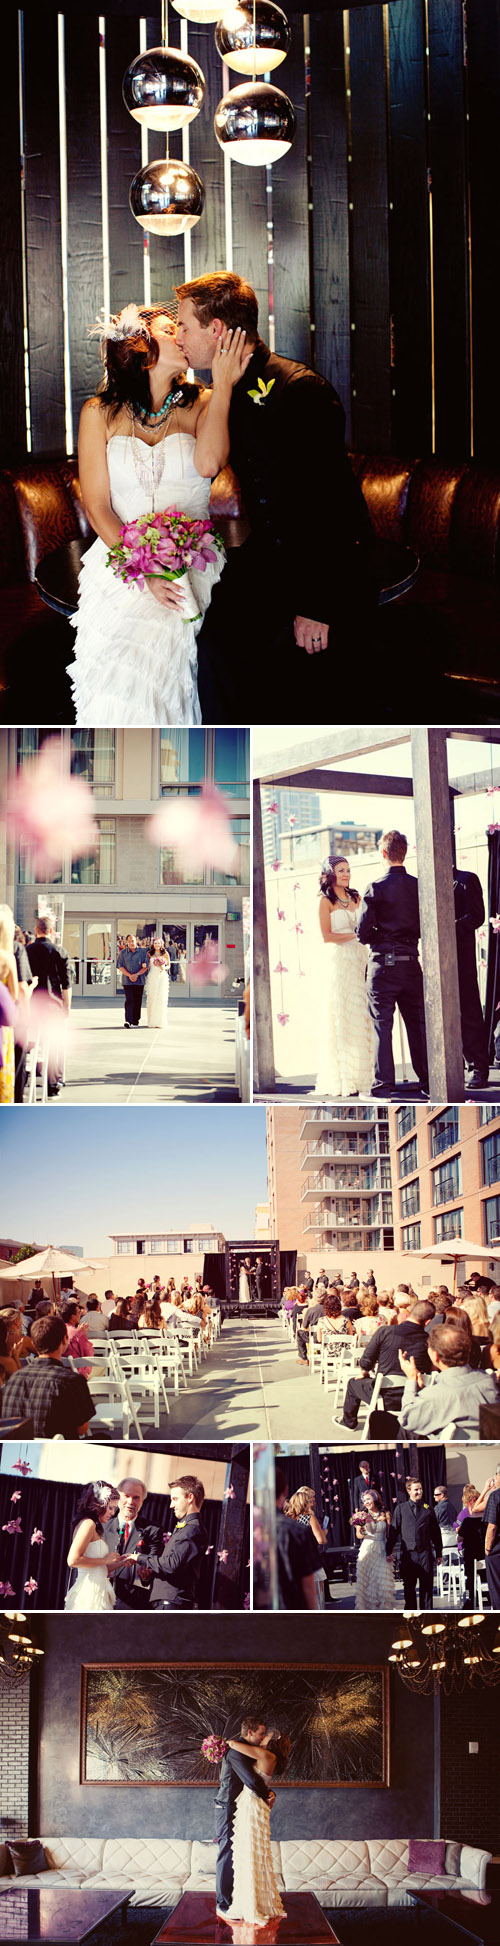 San Diego Hard Rock Hotel real wedding ceremony, pink and black wedding color palette, images by Sarah Yates Photography